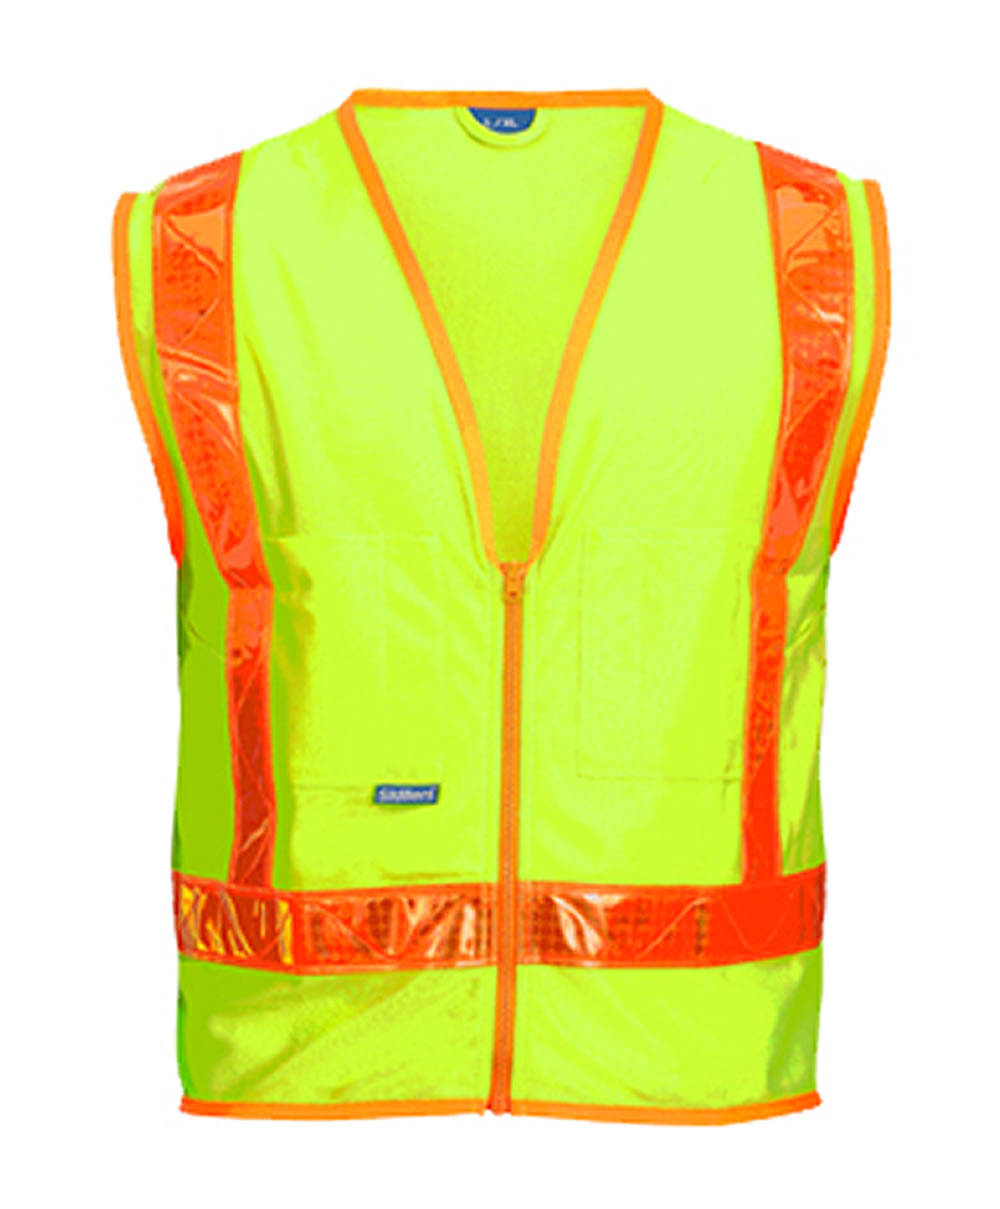 Skillers High Visibility Safety Vest – Lime Green Solid Vest